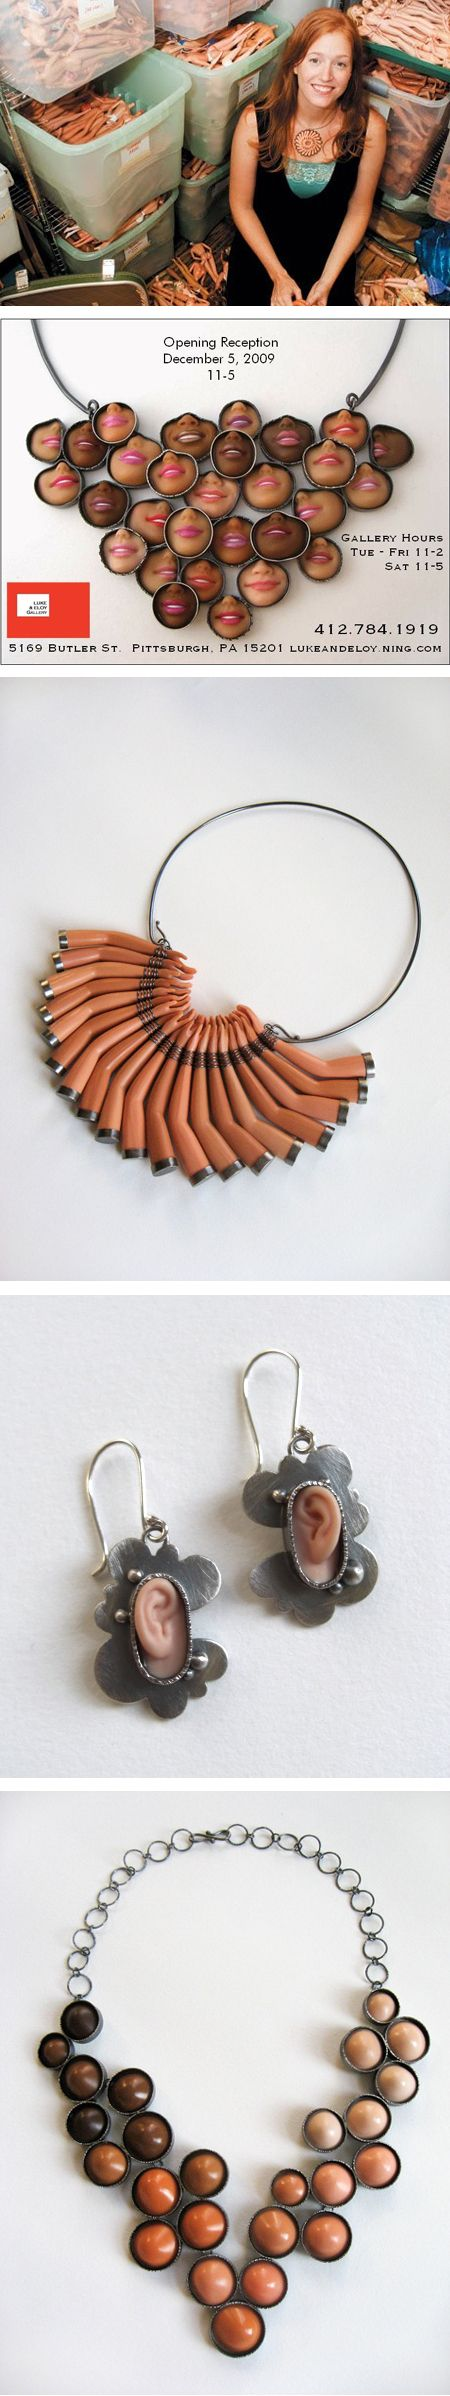 Jewelry made of Barbie parts. Like a Barbie boob necklace? Fish, you could make bank on stuff like this!